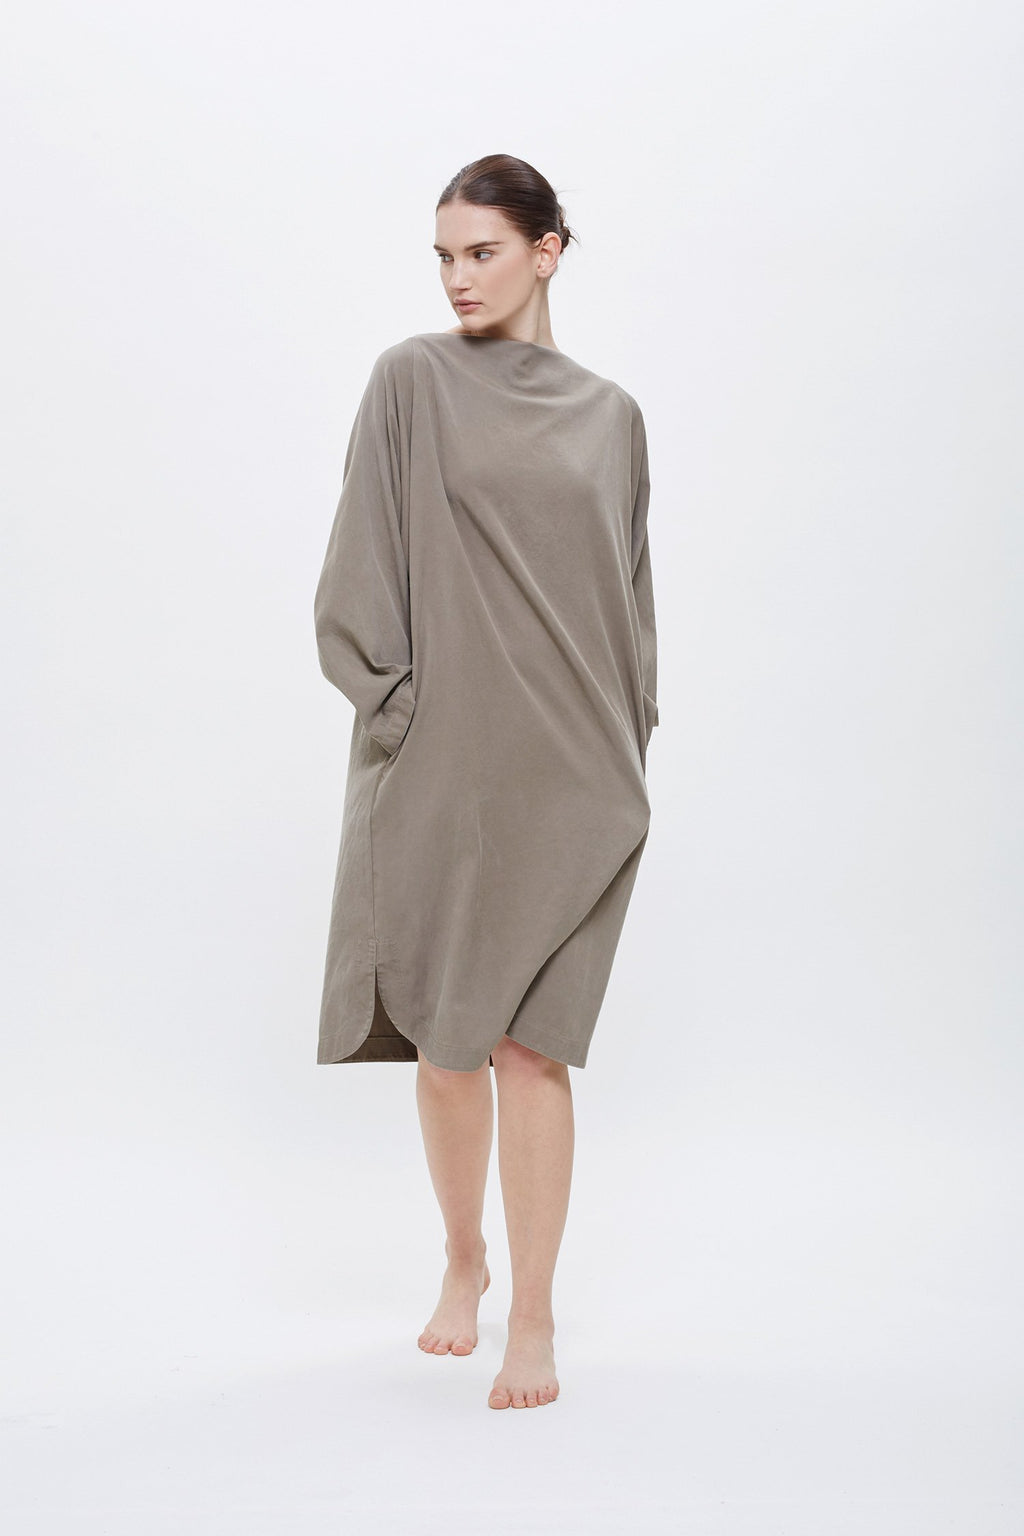 Black Crane Folded Neck Dress in Ash